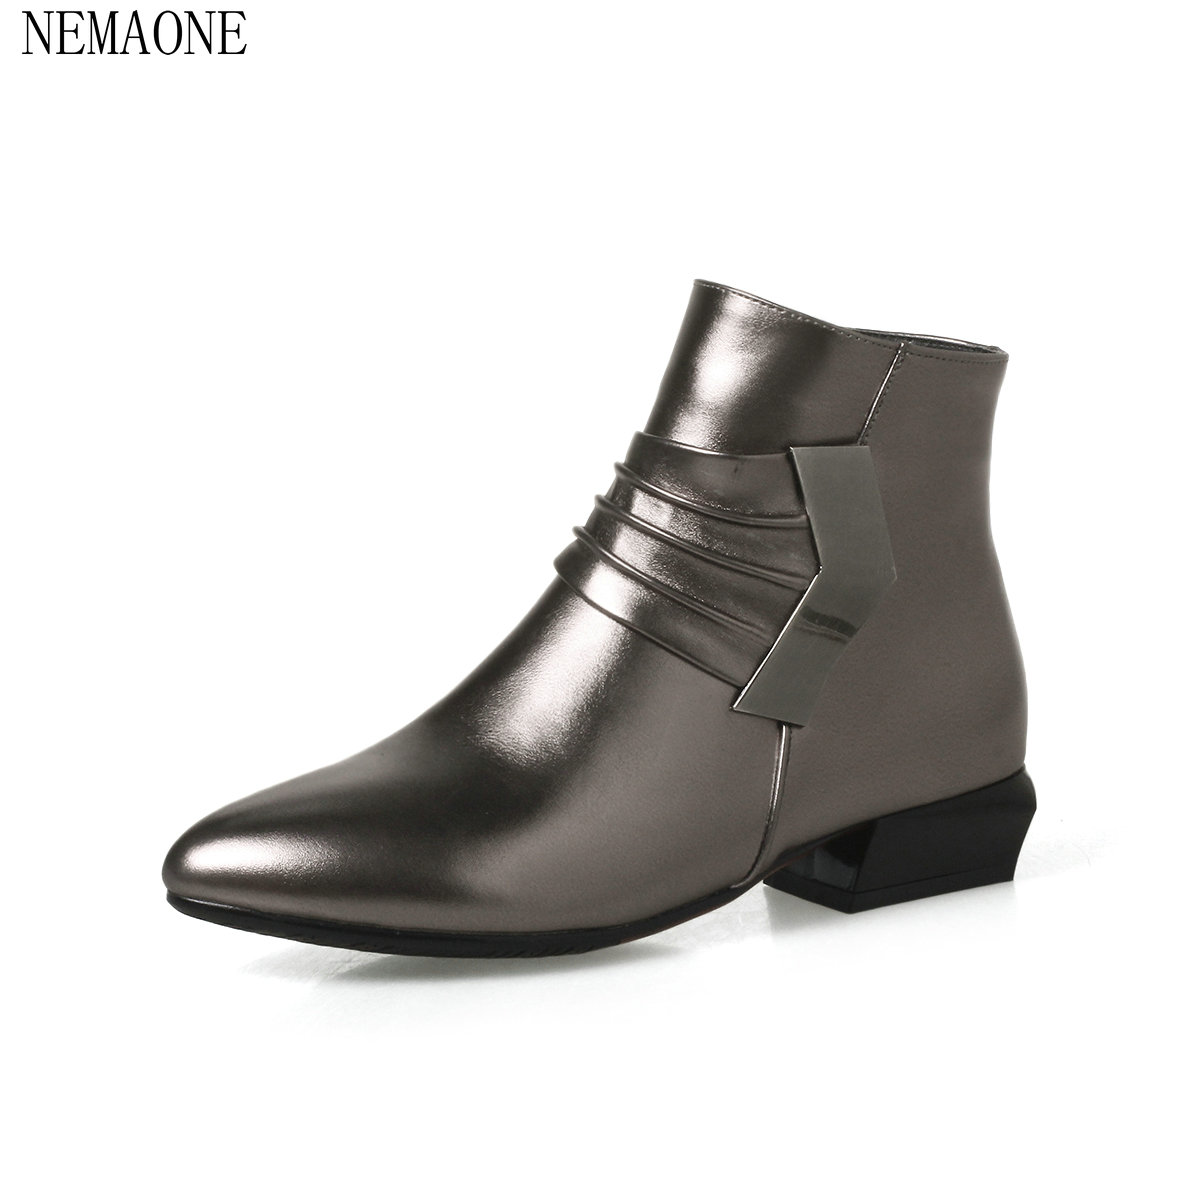 NEMAONE ankle boots special cross-tied lace-up height increasing round toe solid winter wear-resisting retro women boots<br>